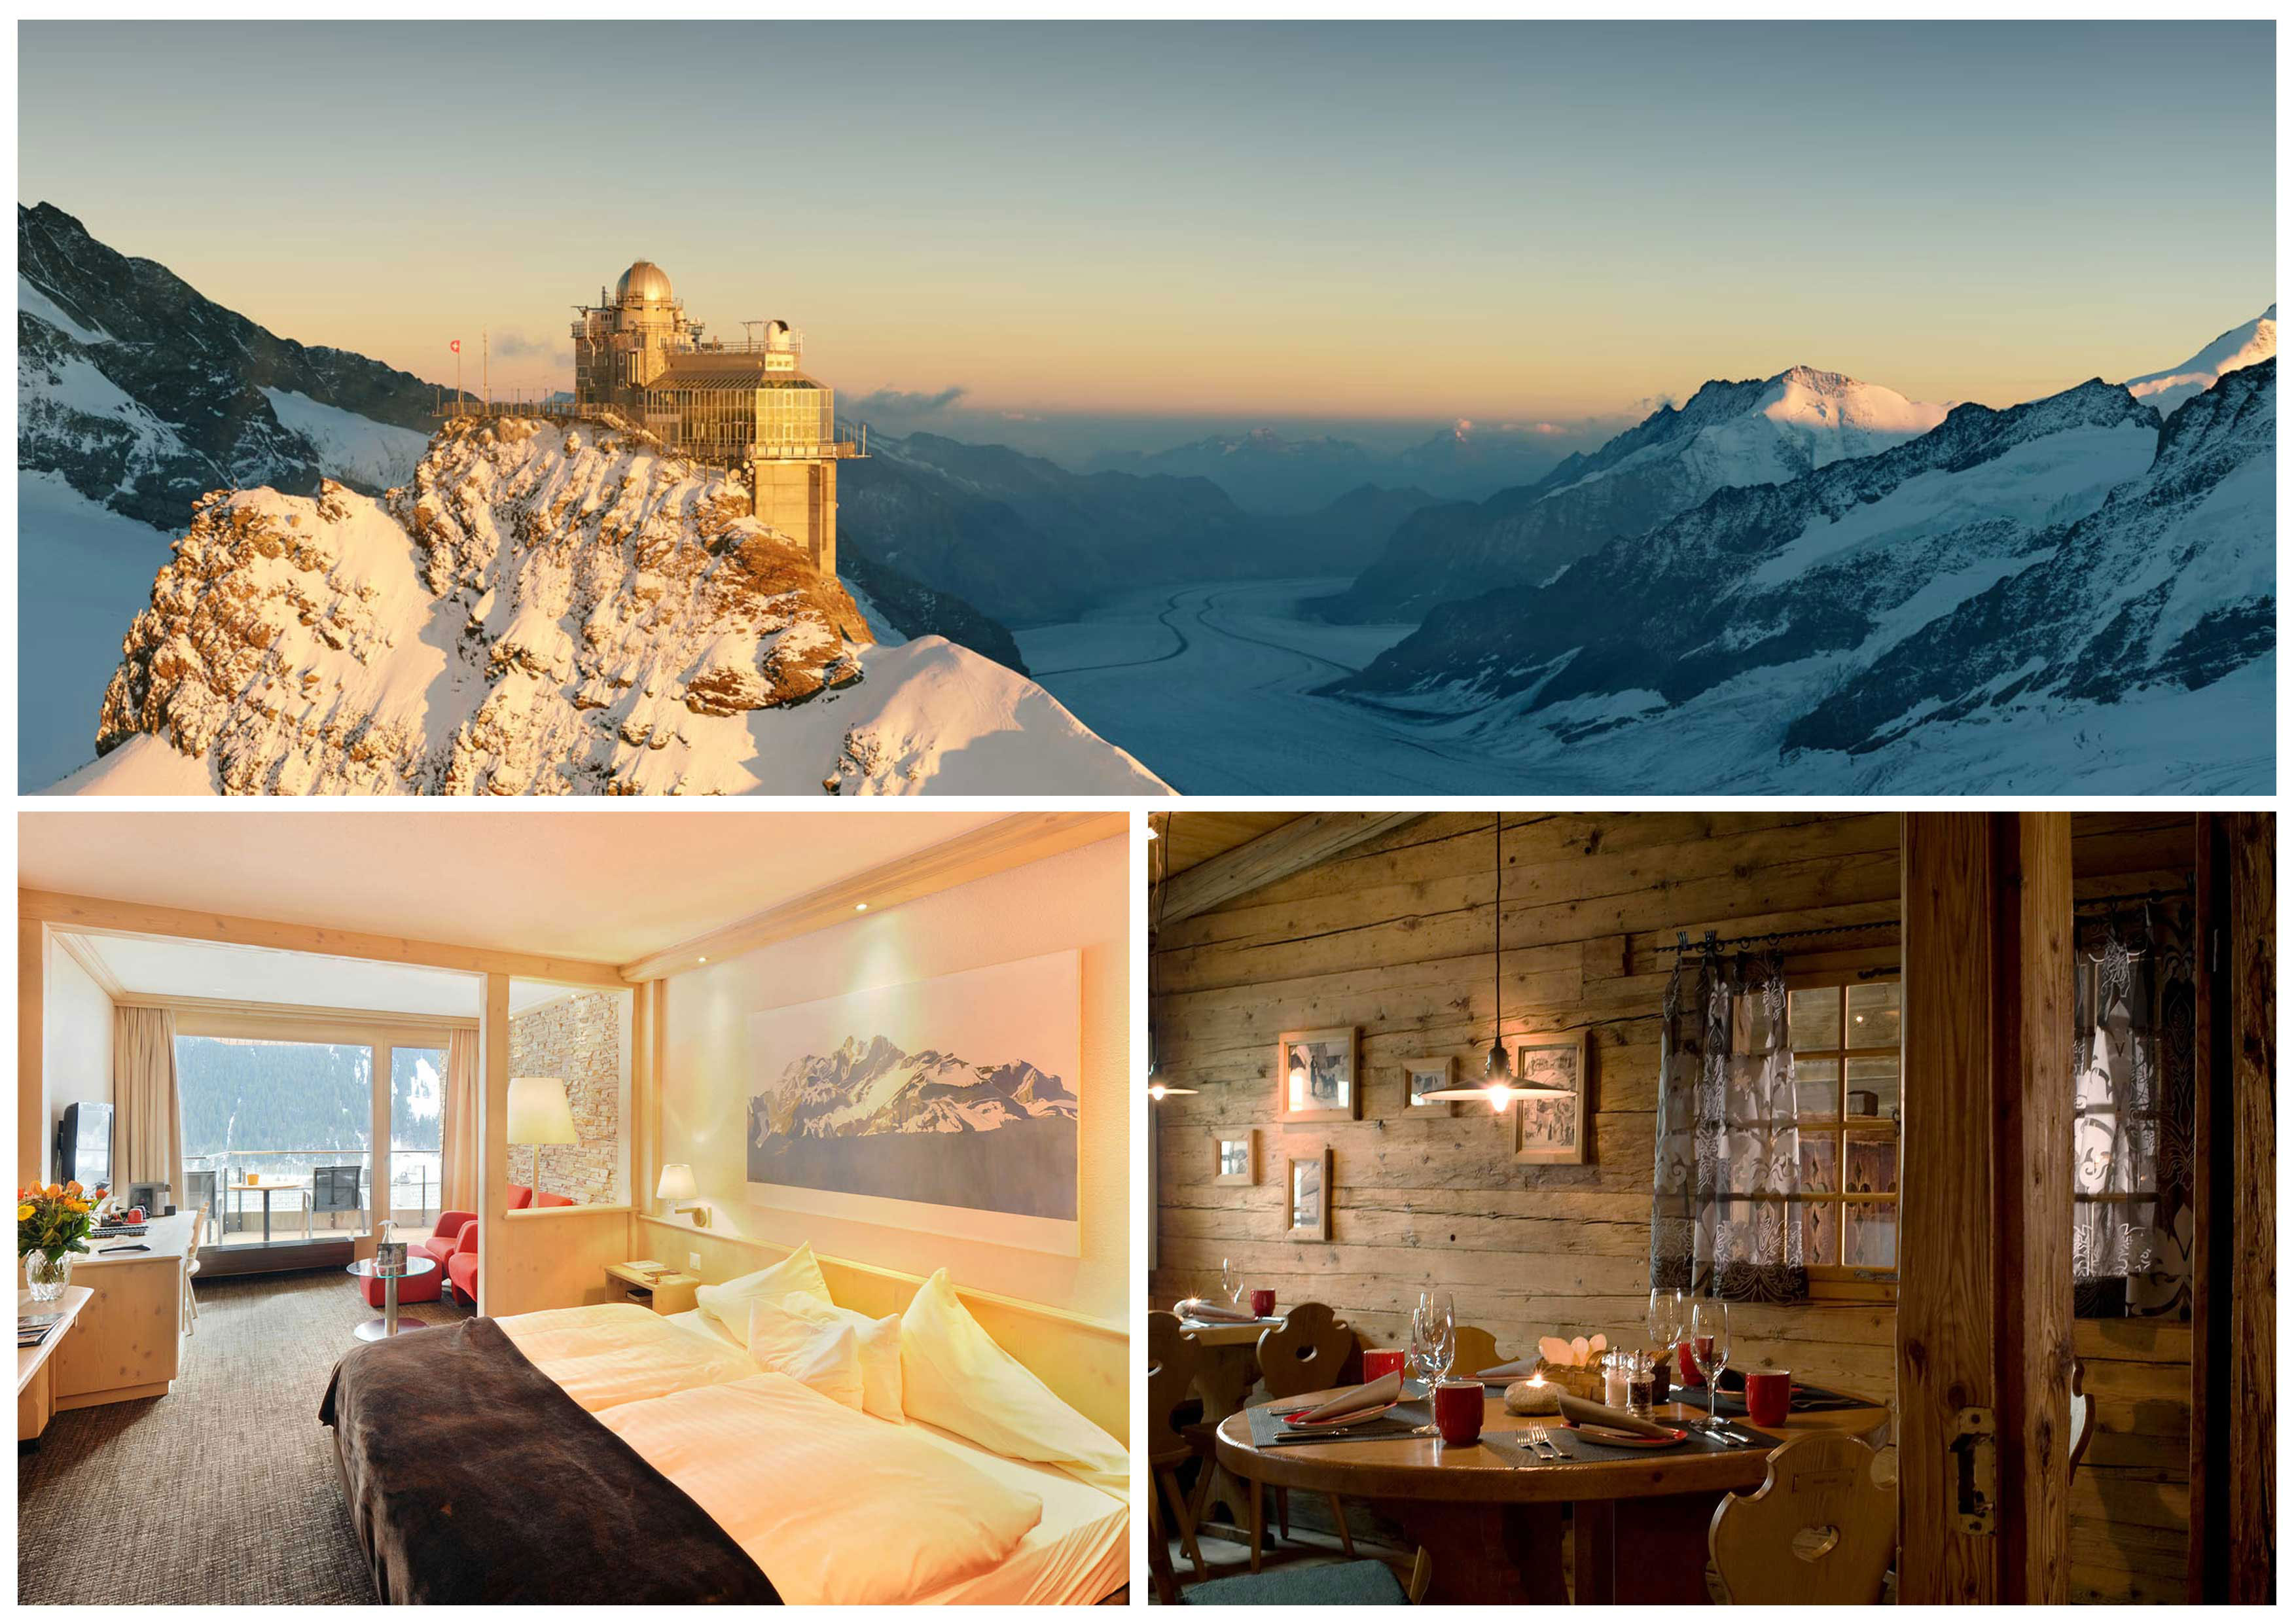 """The Jungfrau Region: A world of its own - Not for nothing do we describe the Jungfrau Region as """"A world of its own"""". Situated in the Bern"""